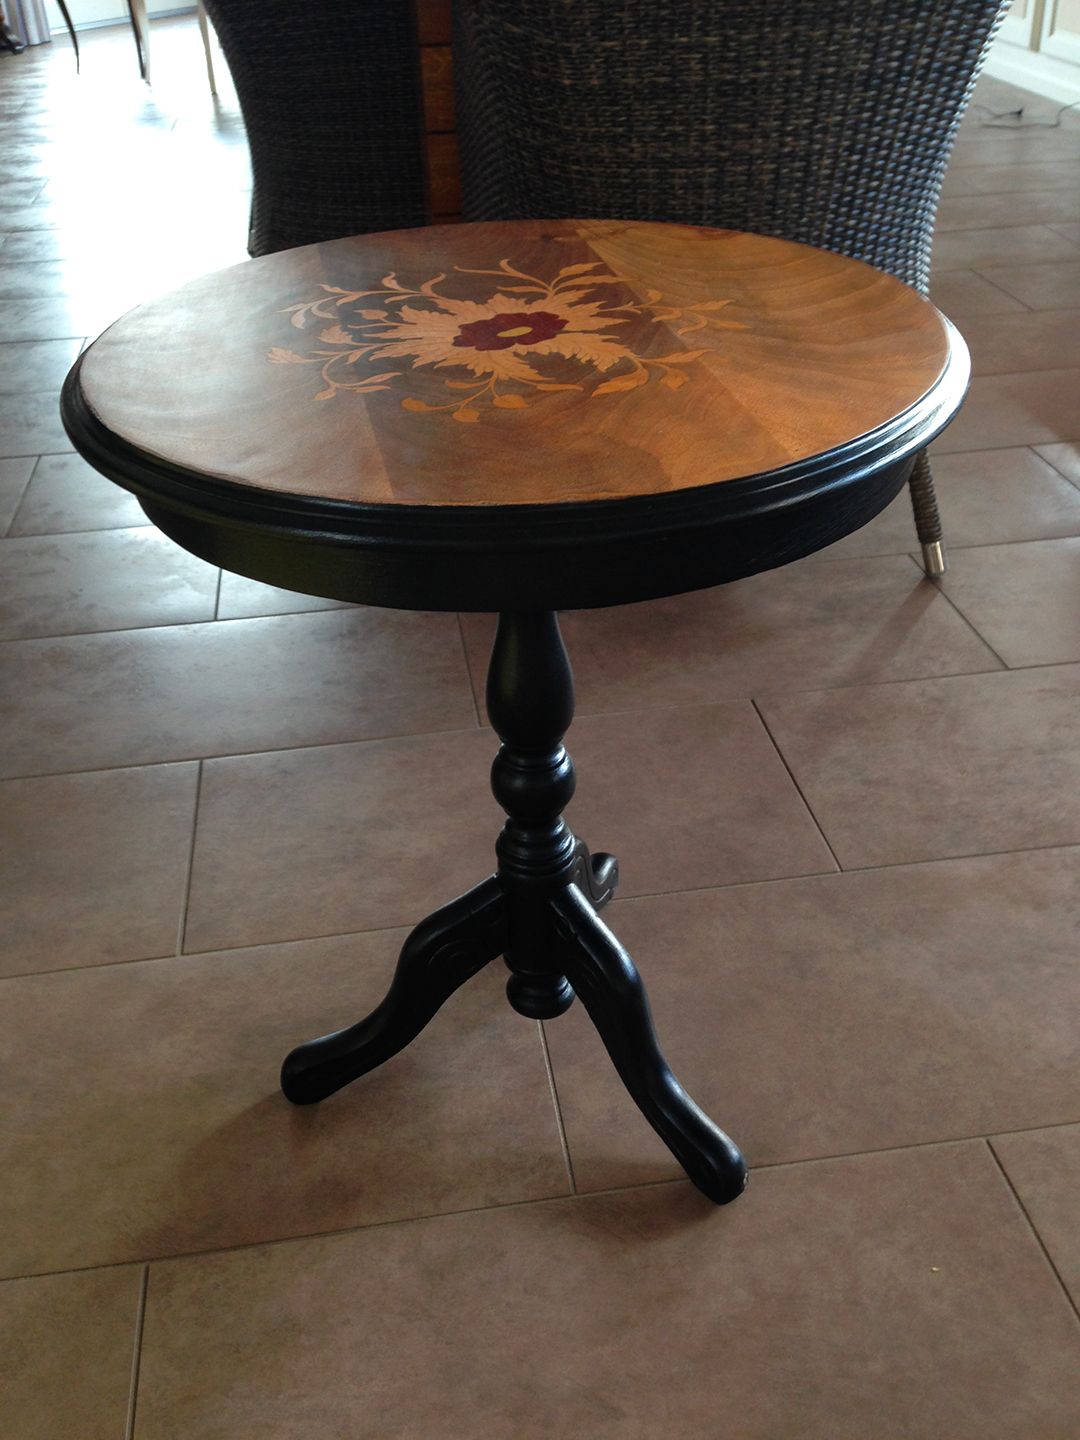 table d'appoint renovée